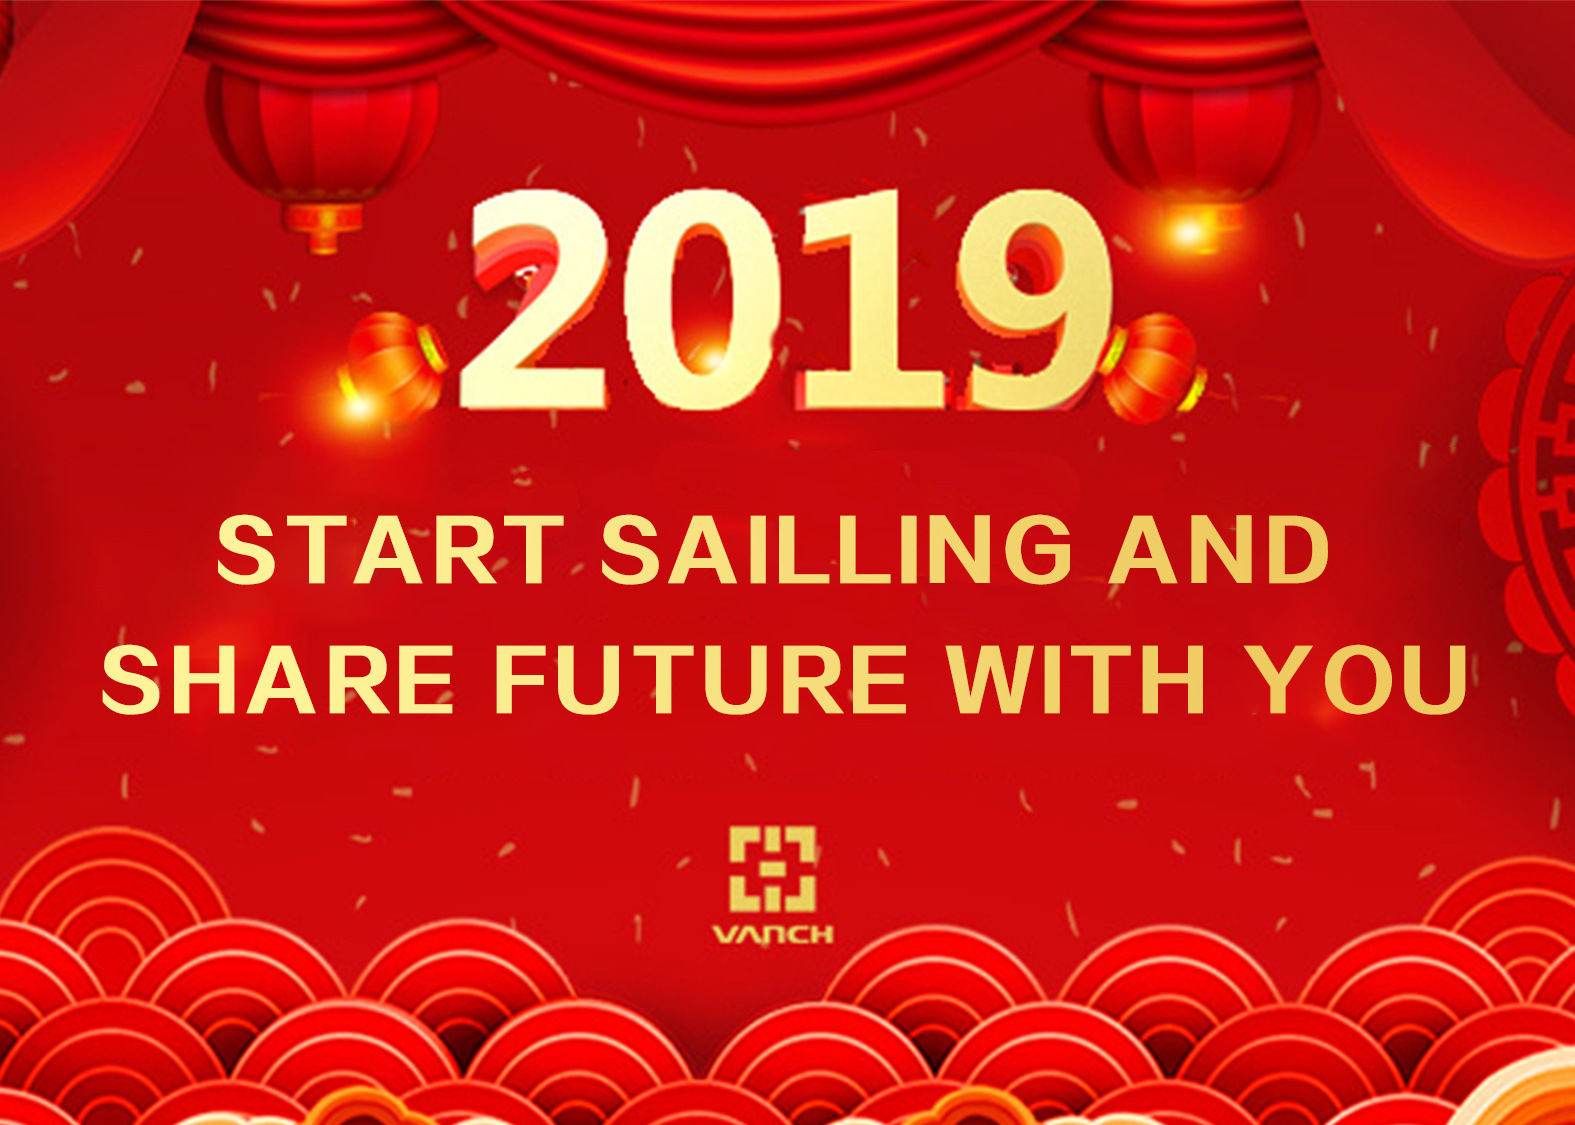 2019 VANCH Set sailing and share the future